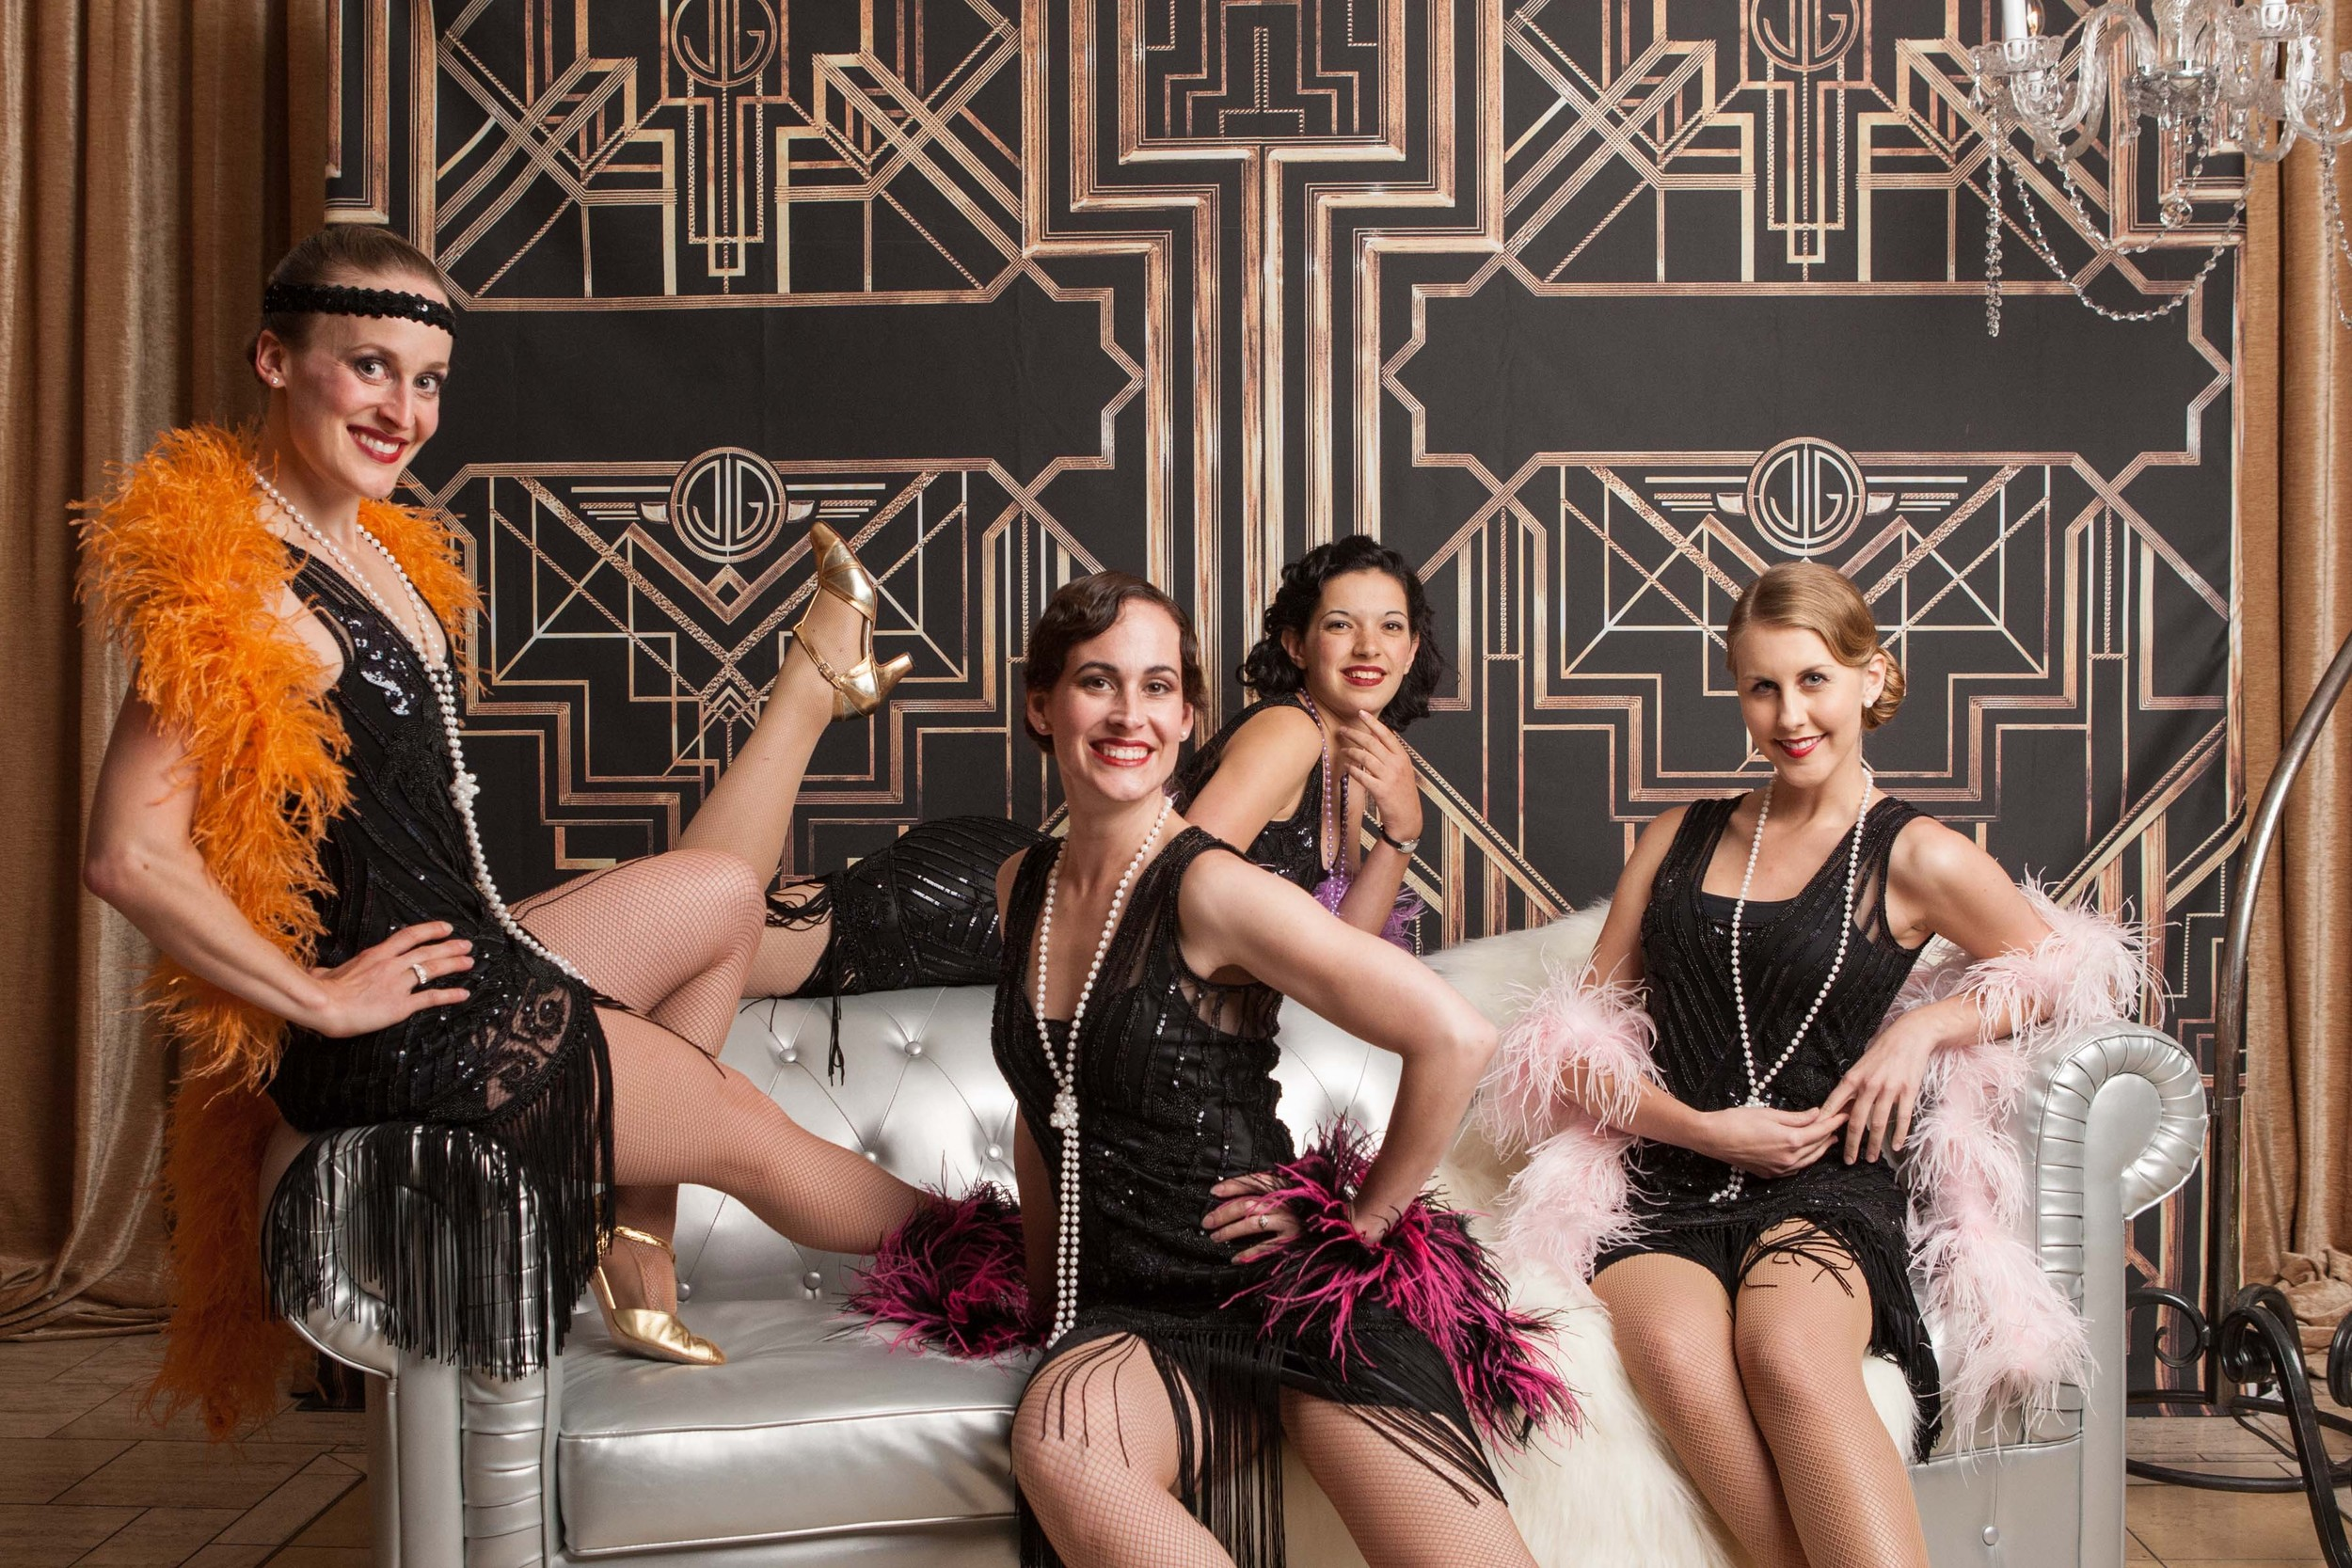 Decobelles at a 1920s themed party